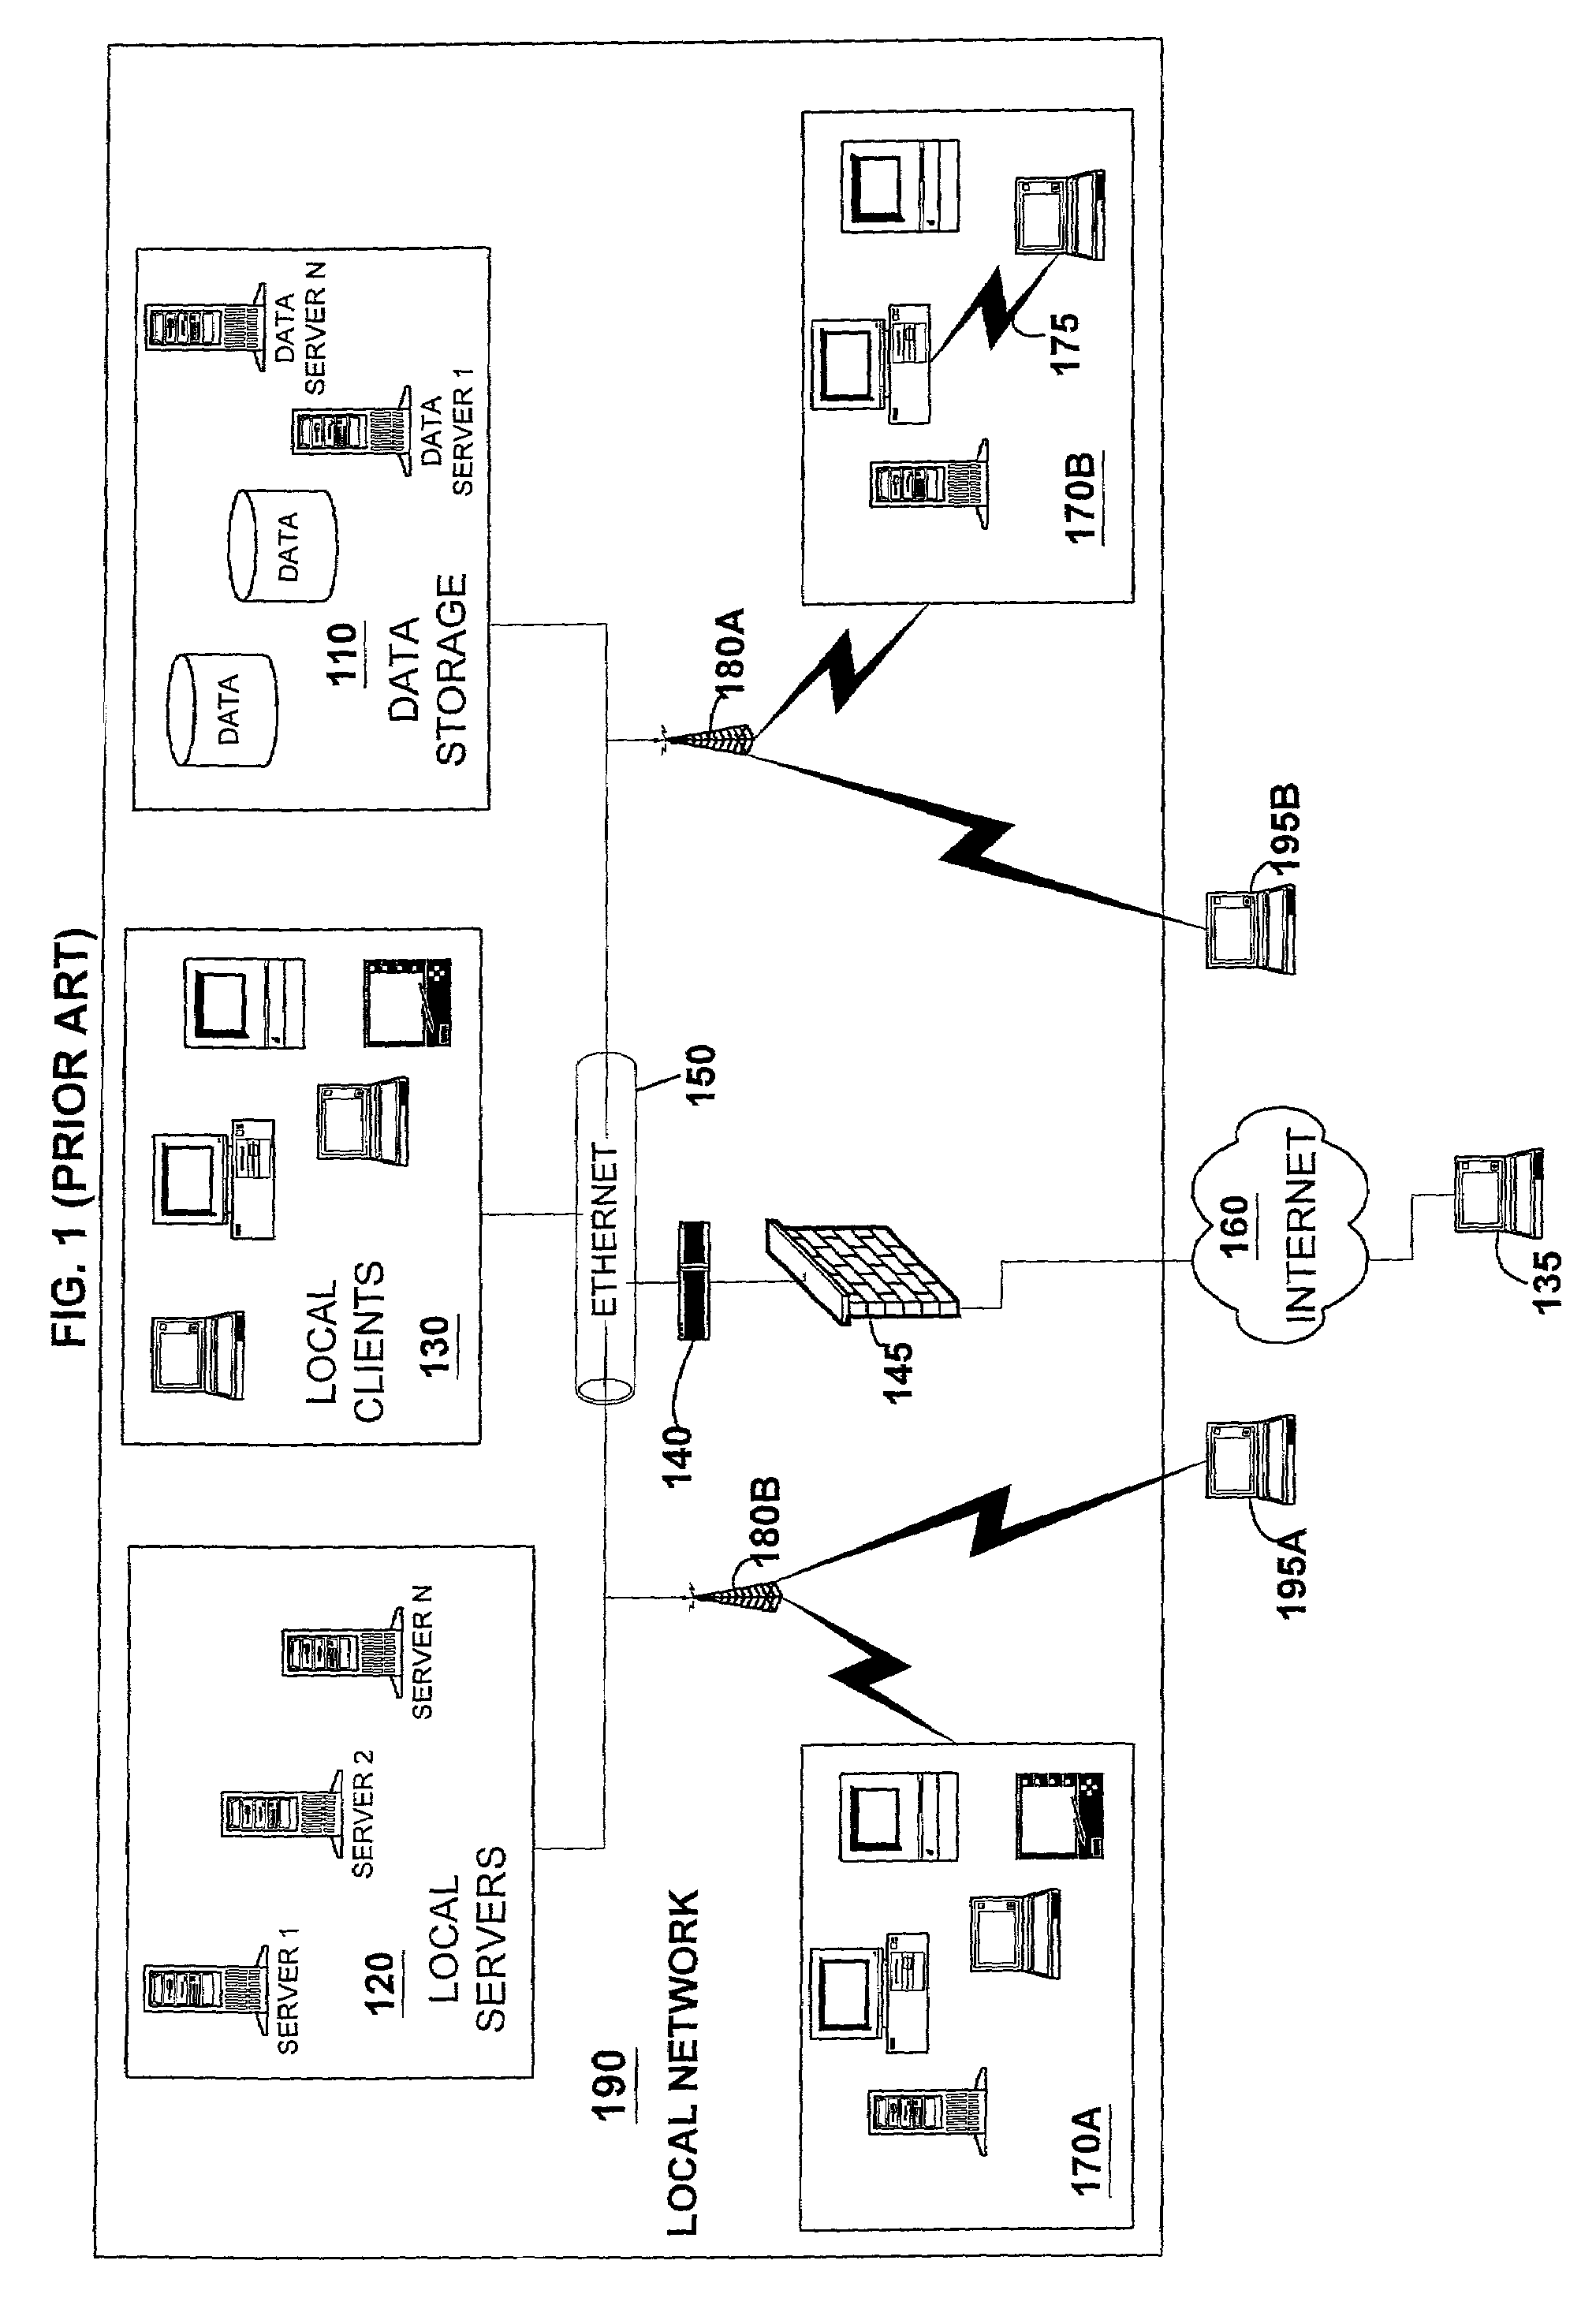 Patent Us7042852 System And Method For Wireless Lan